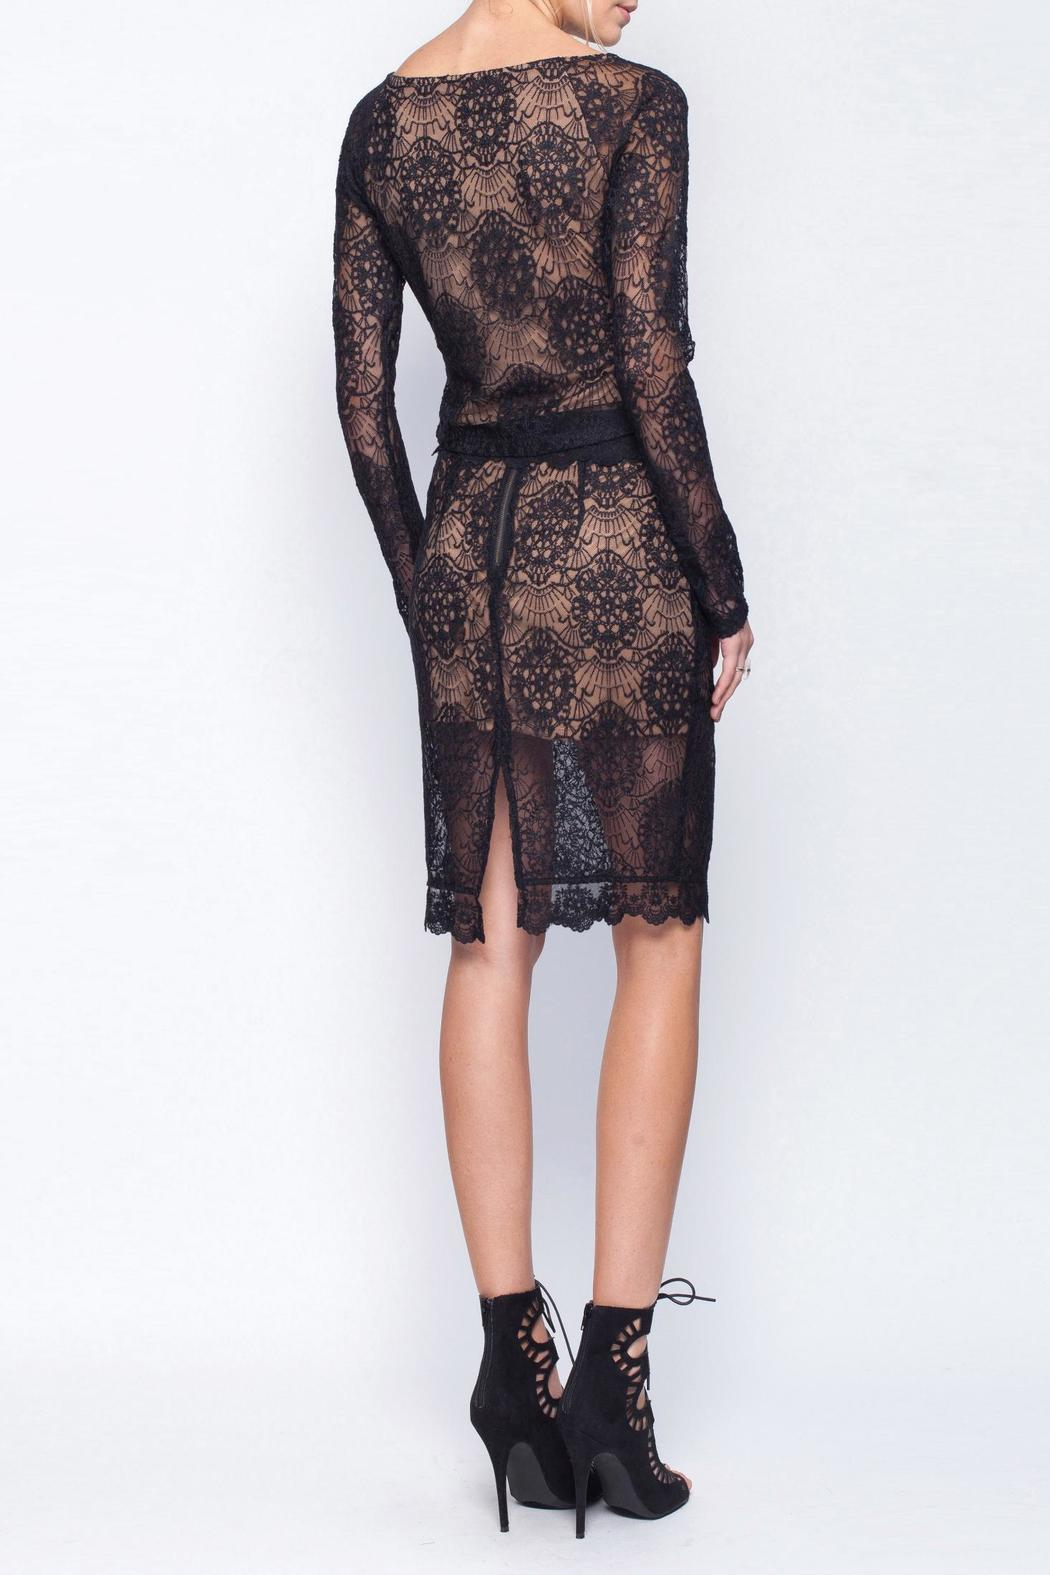 Gentle Fawn Lace Mesh Skirt - Back Cropped Image